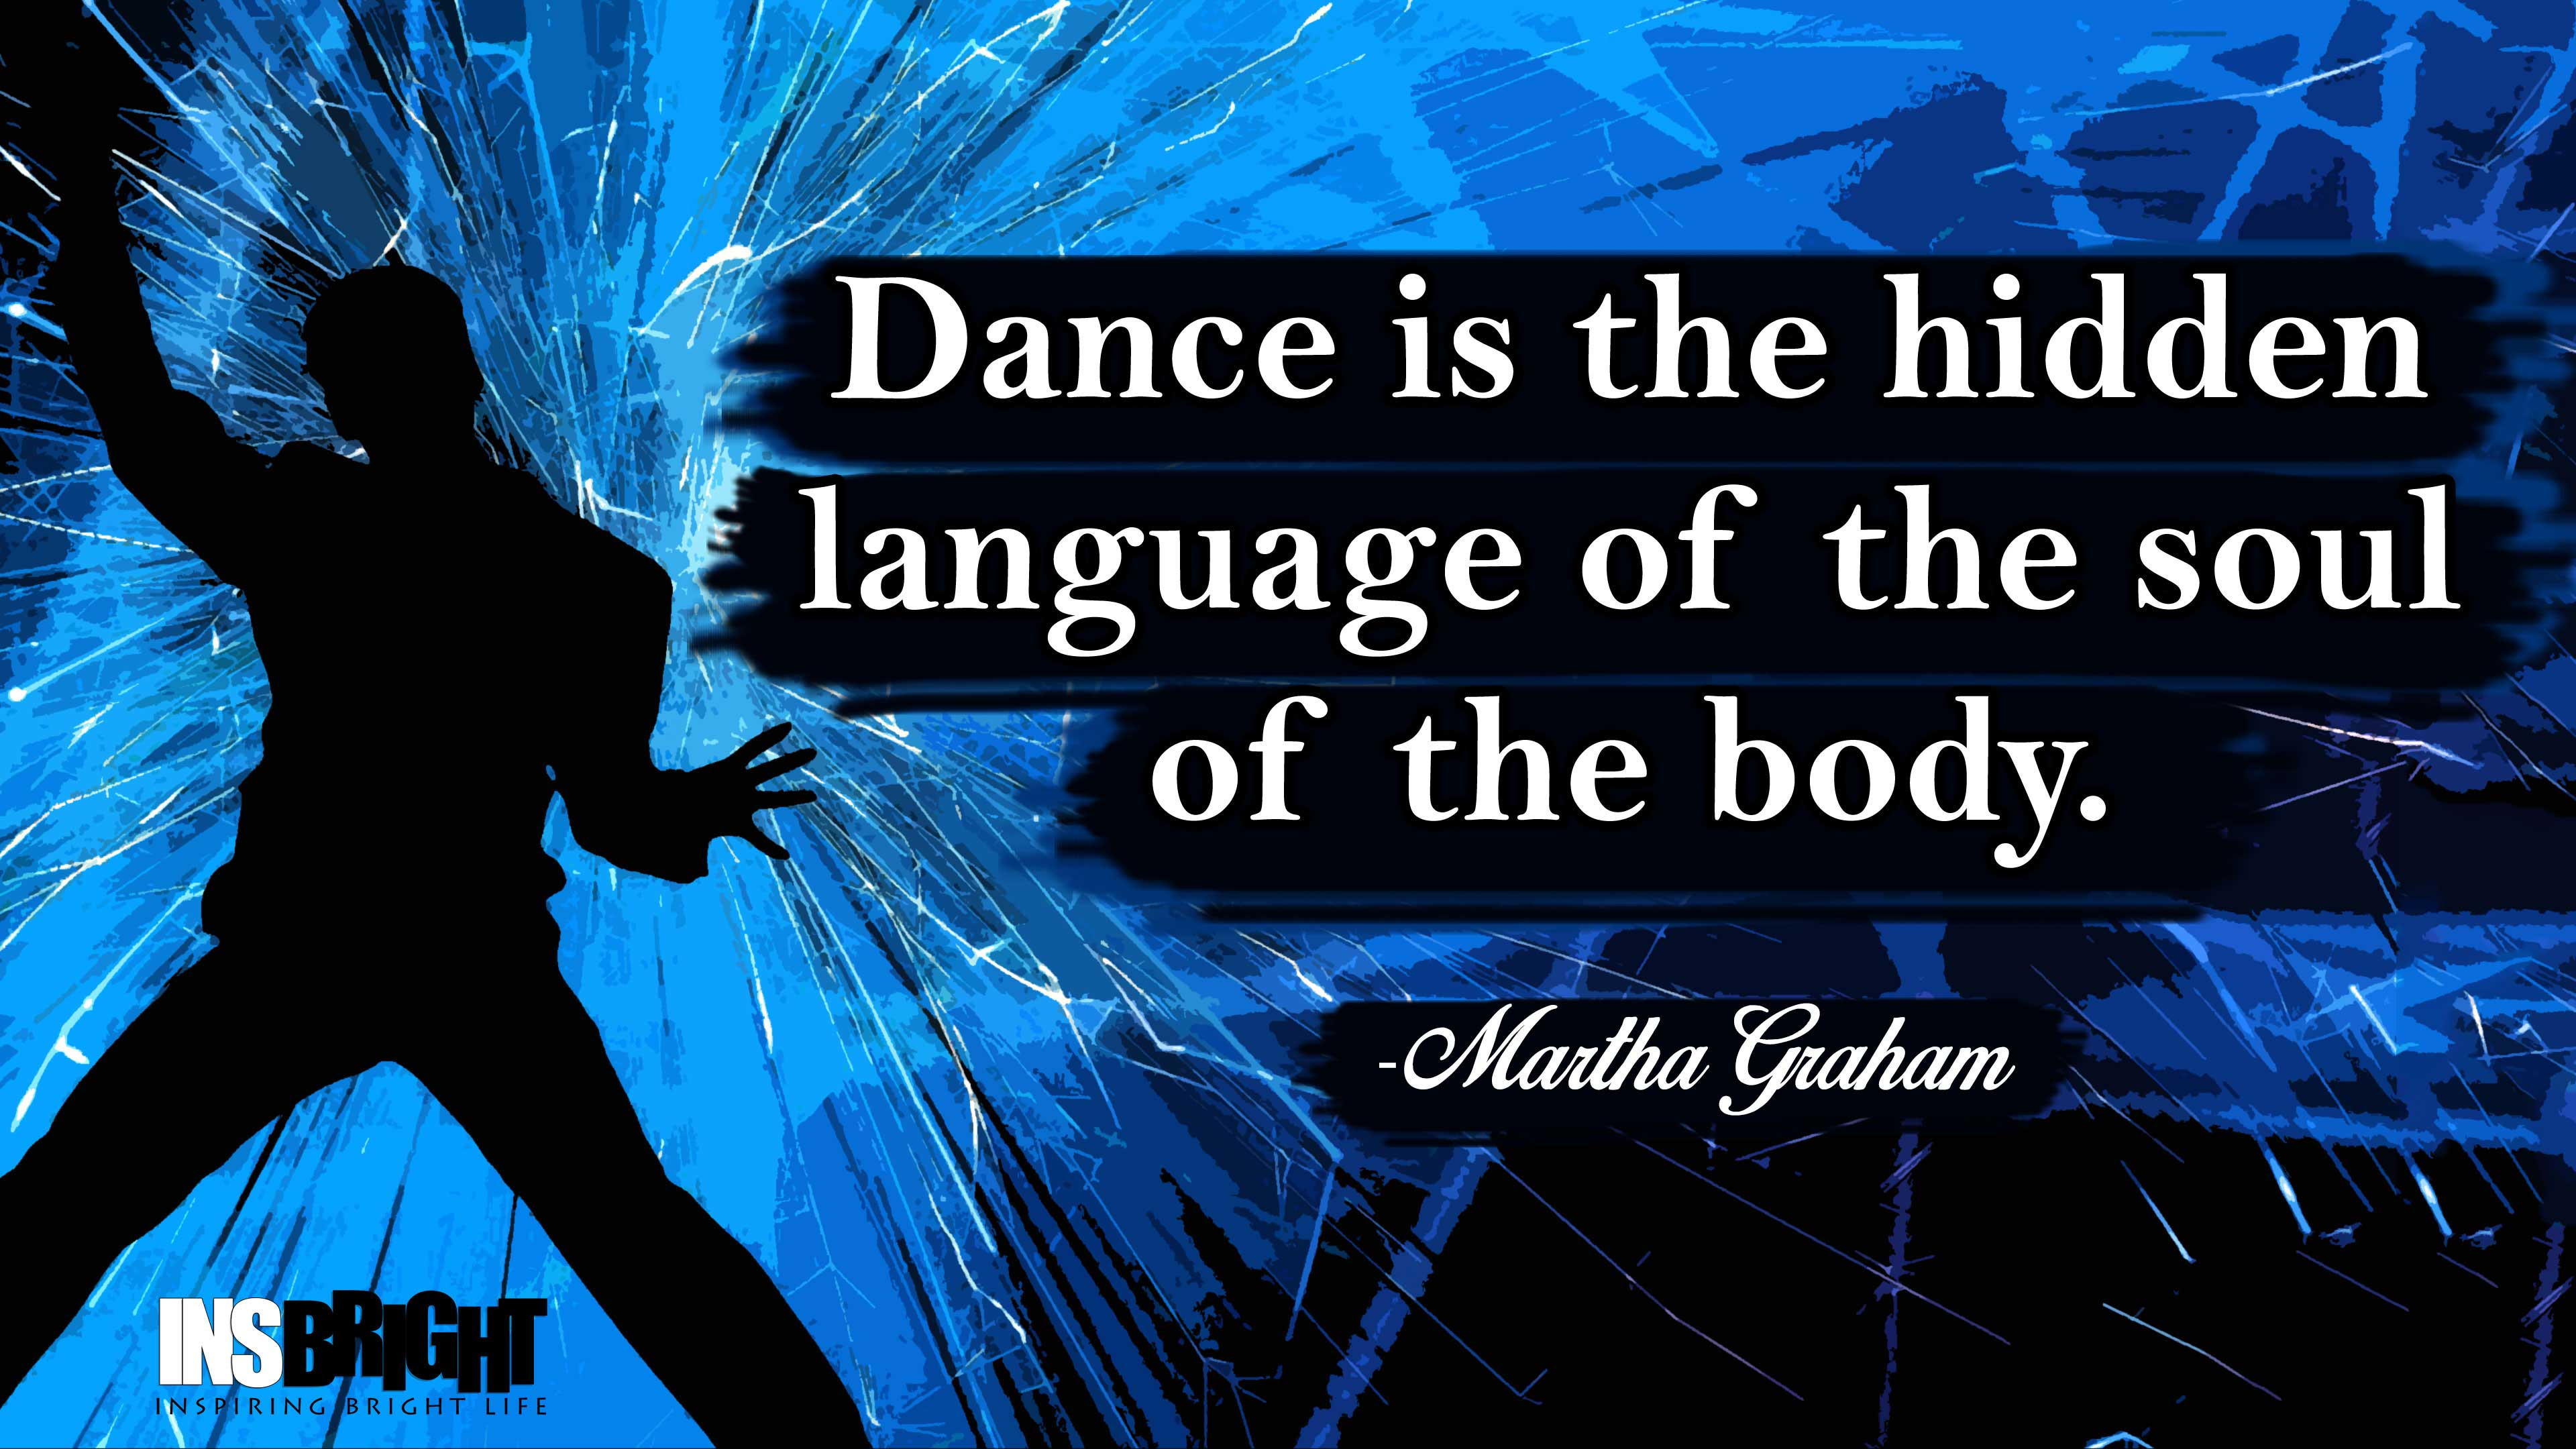 Quotes About Dance And Life 10 Inspirational Dance Quotes Imagesfamous Dancer  Insbright